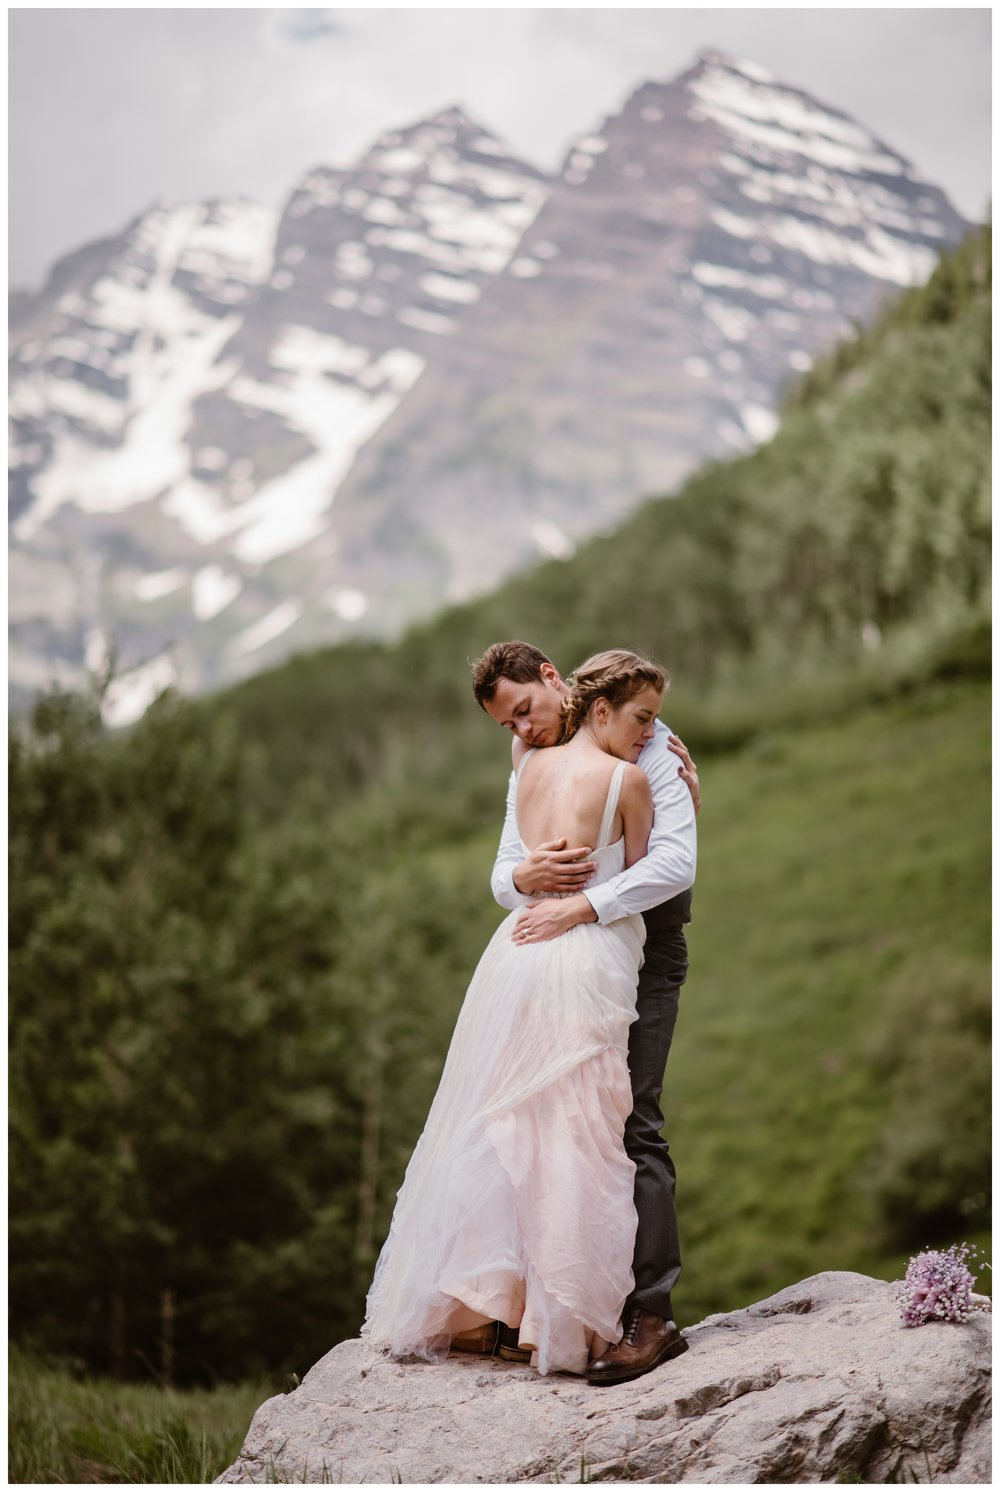 Marcela and Vasily ended their epic hiking elopement day with a trip to the famous Maroon Bells in Aspen, Colorado. Photo by Maddie Mae, Adventure Instead.